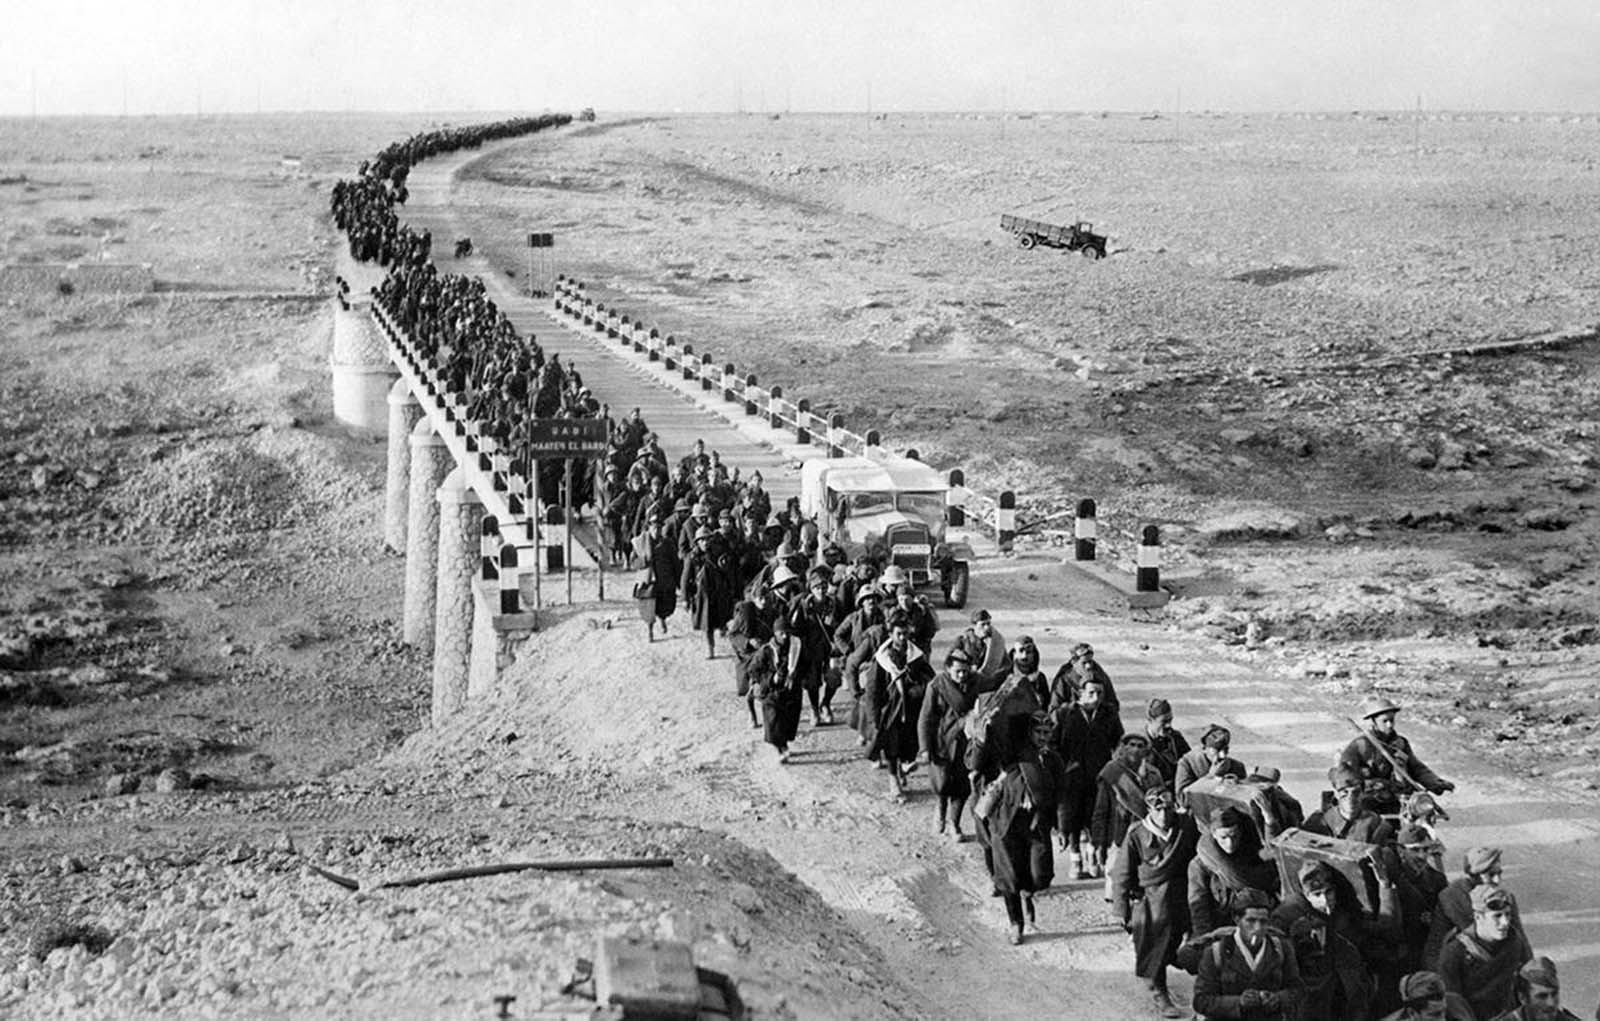 Bardia, a fortified Libyan seaport, was captured by British forces, with more than 38,000 Italian prisoners, including four generals, and vast quantities of war material. An endless stream of Italian prisoners leaves Bardia, on February 5, 1941, after the Australians had taken possession.